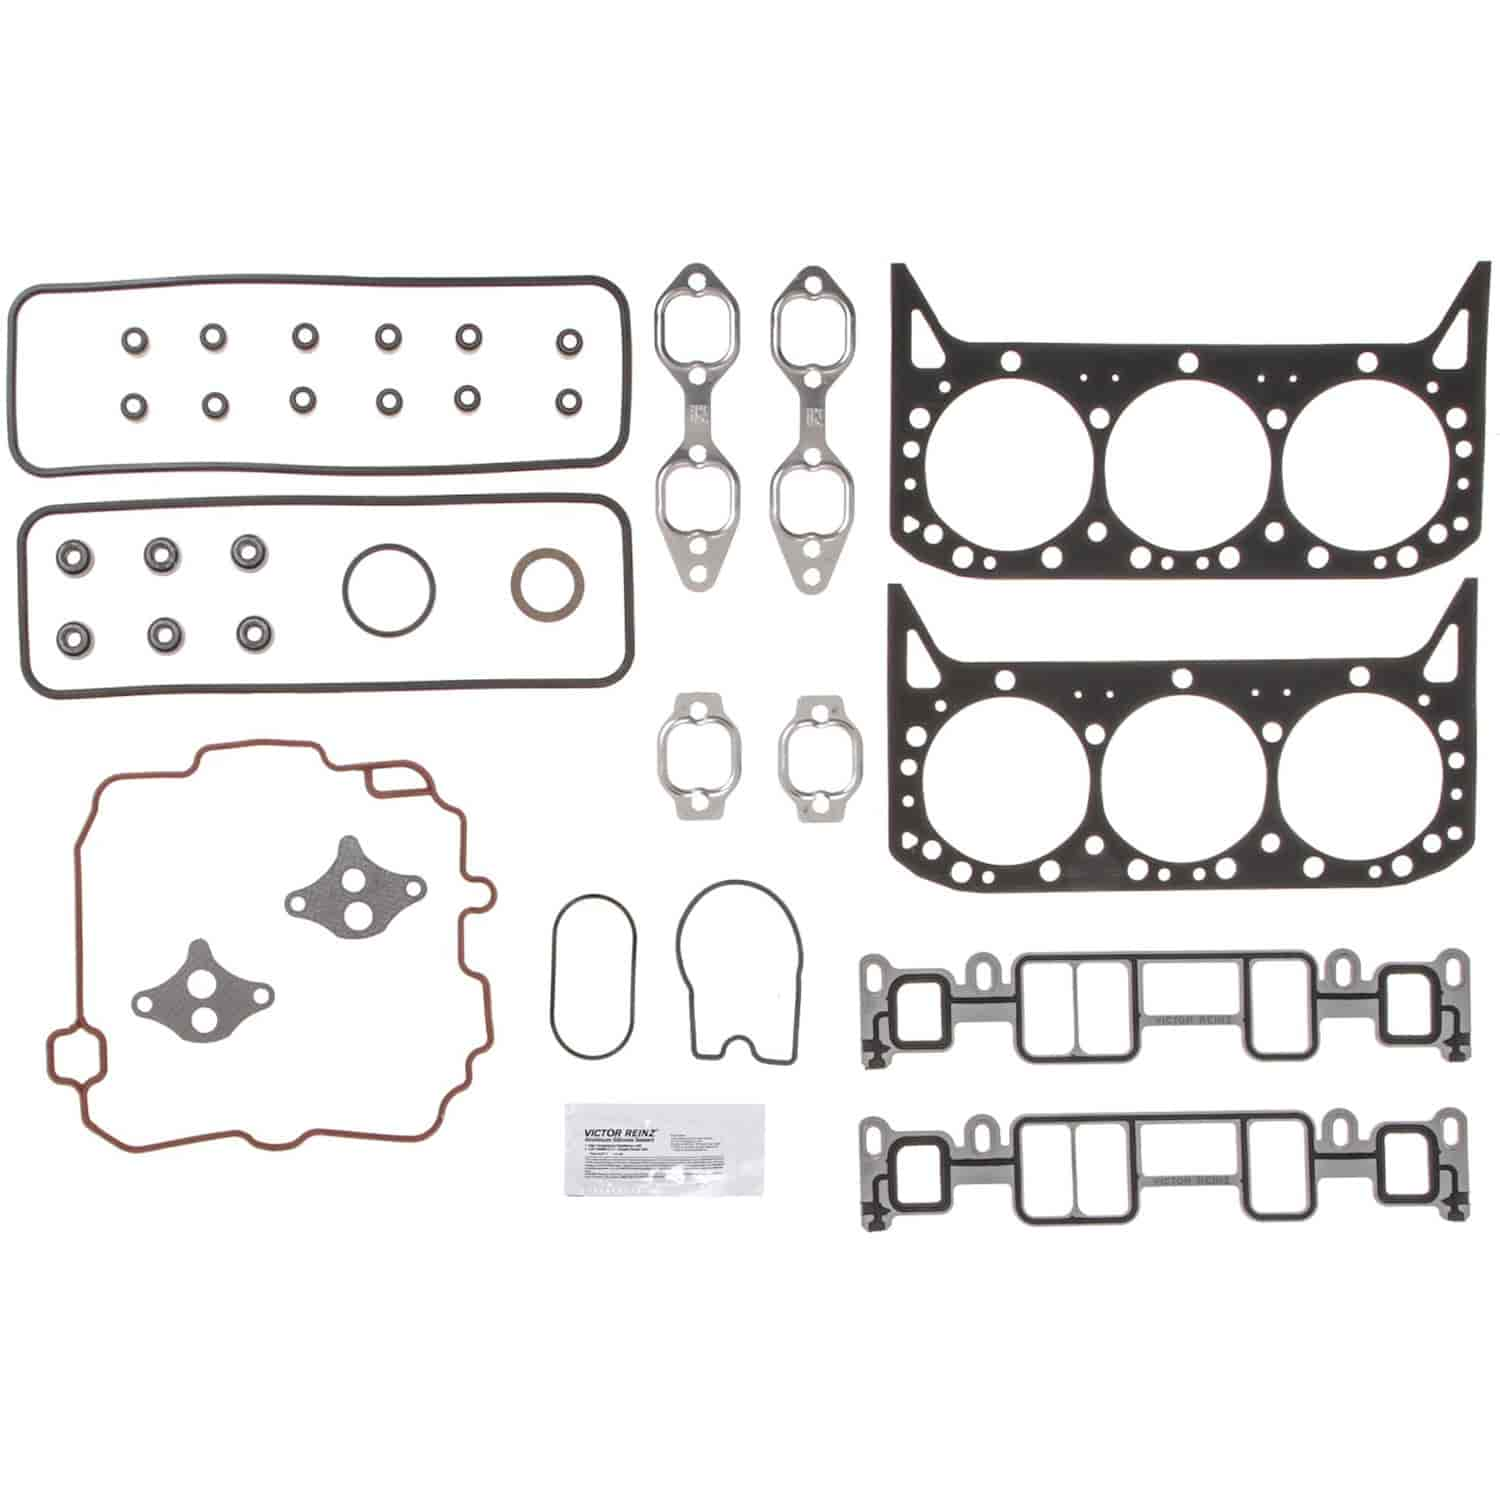 Clevite Mahle Hs F Head Set Gm Trk 4 3l Vortec W Plenum Gaskets Included